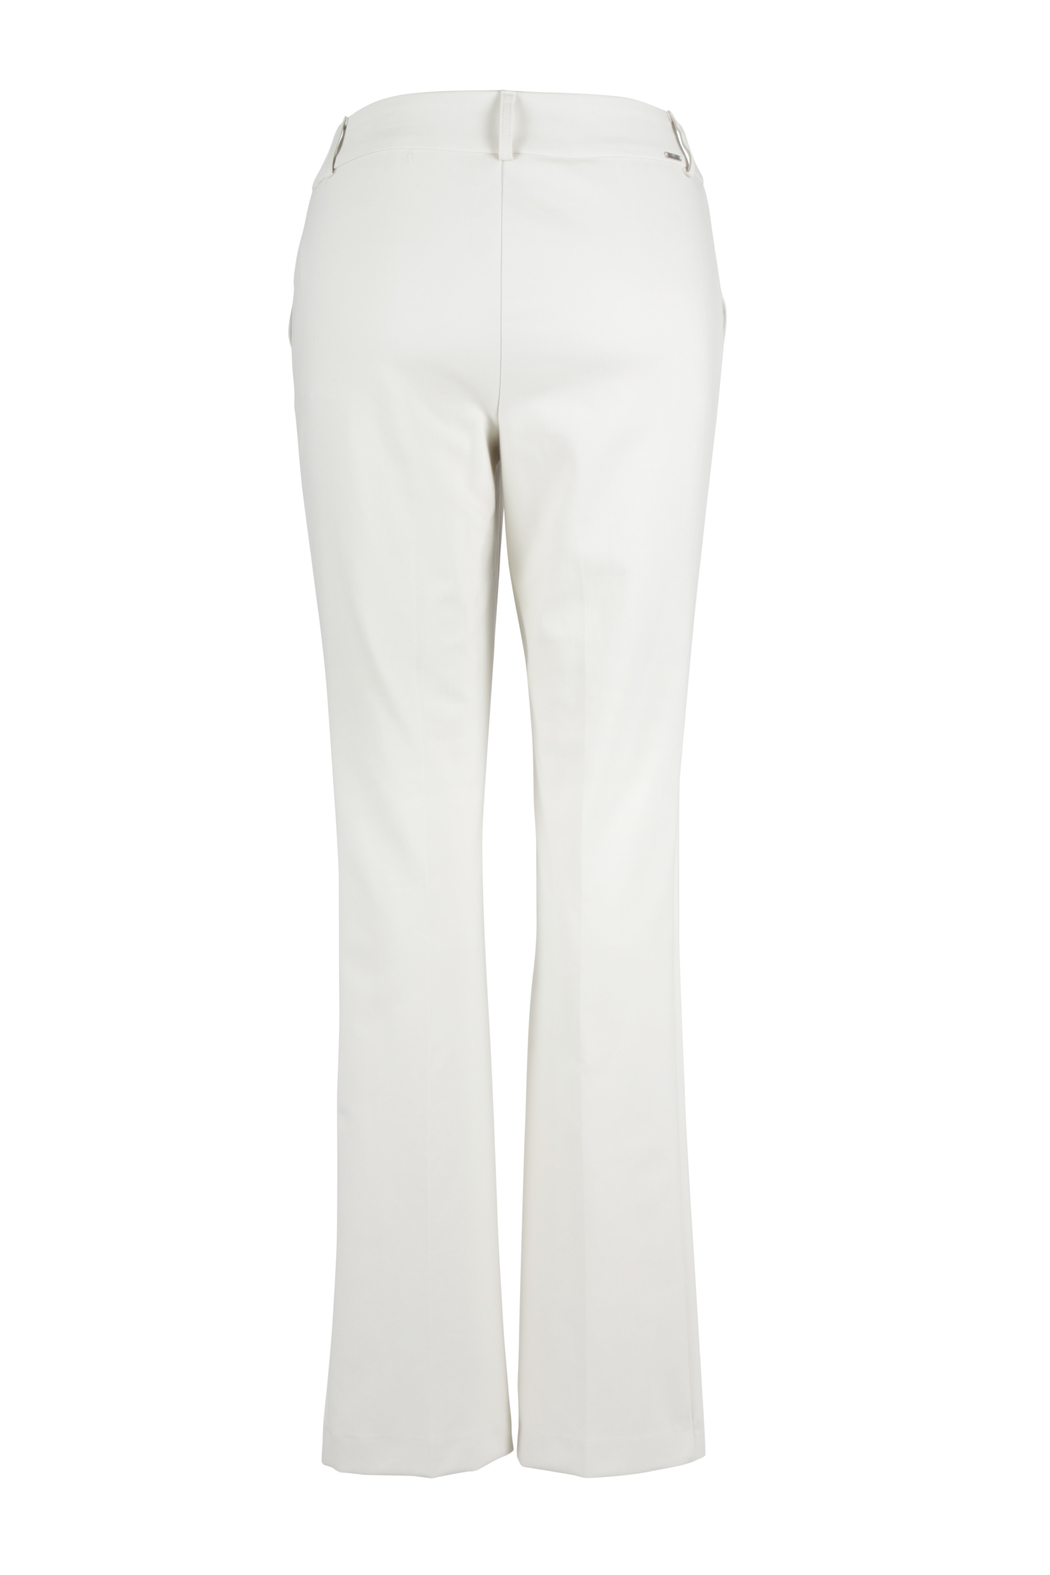 Up! Cavalli Twill Trouser - Front Full Image